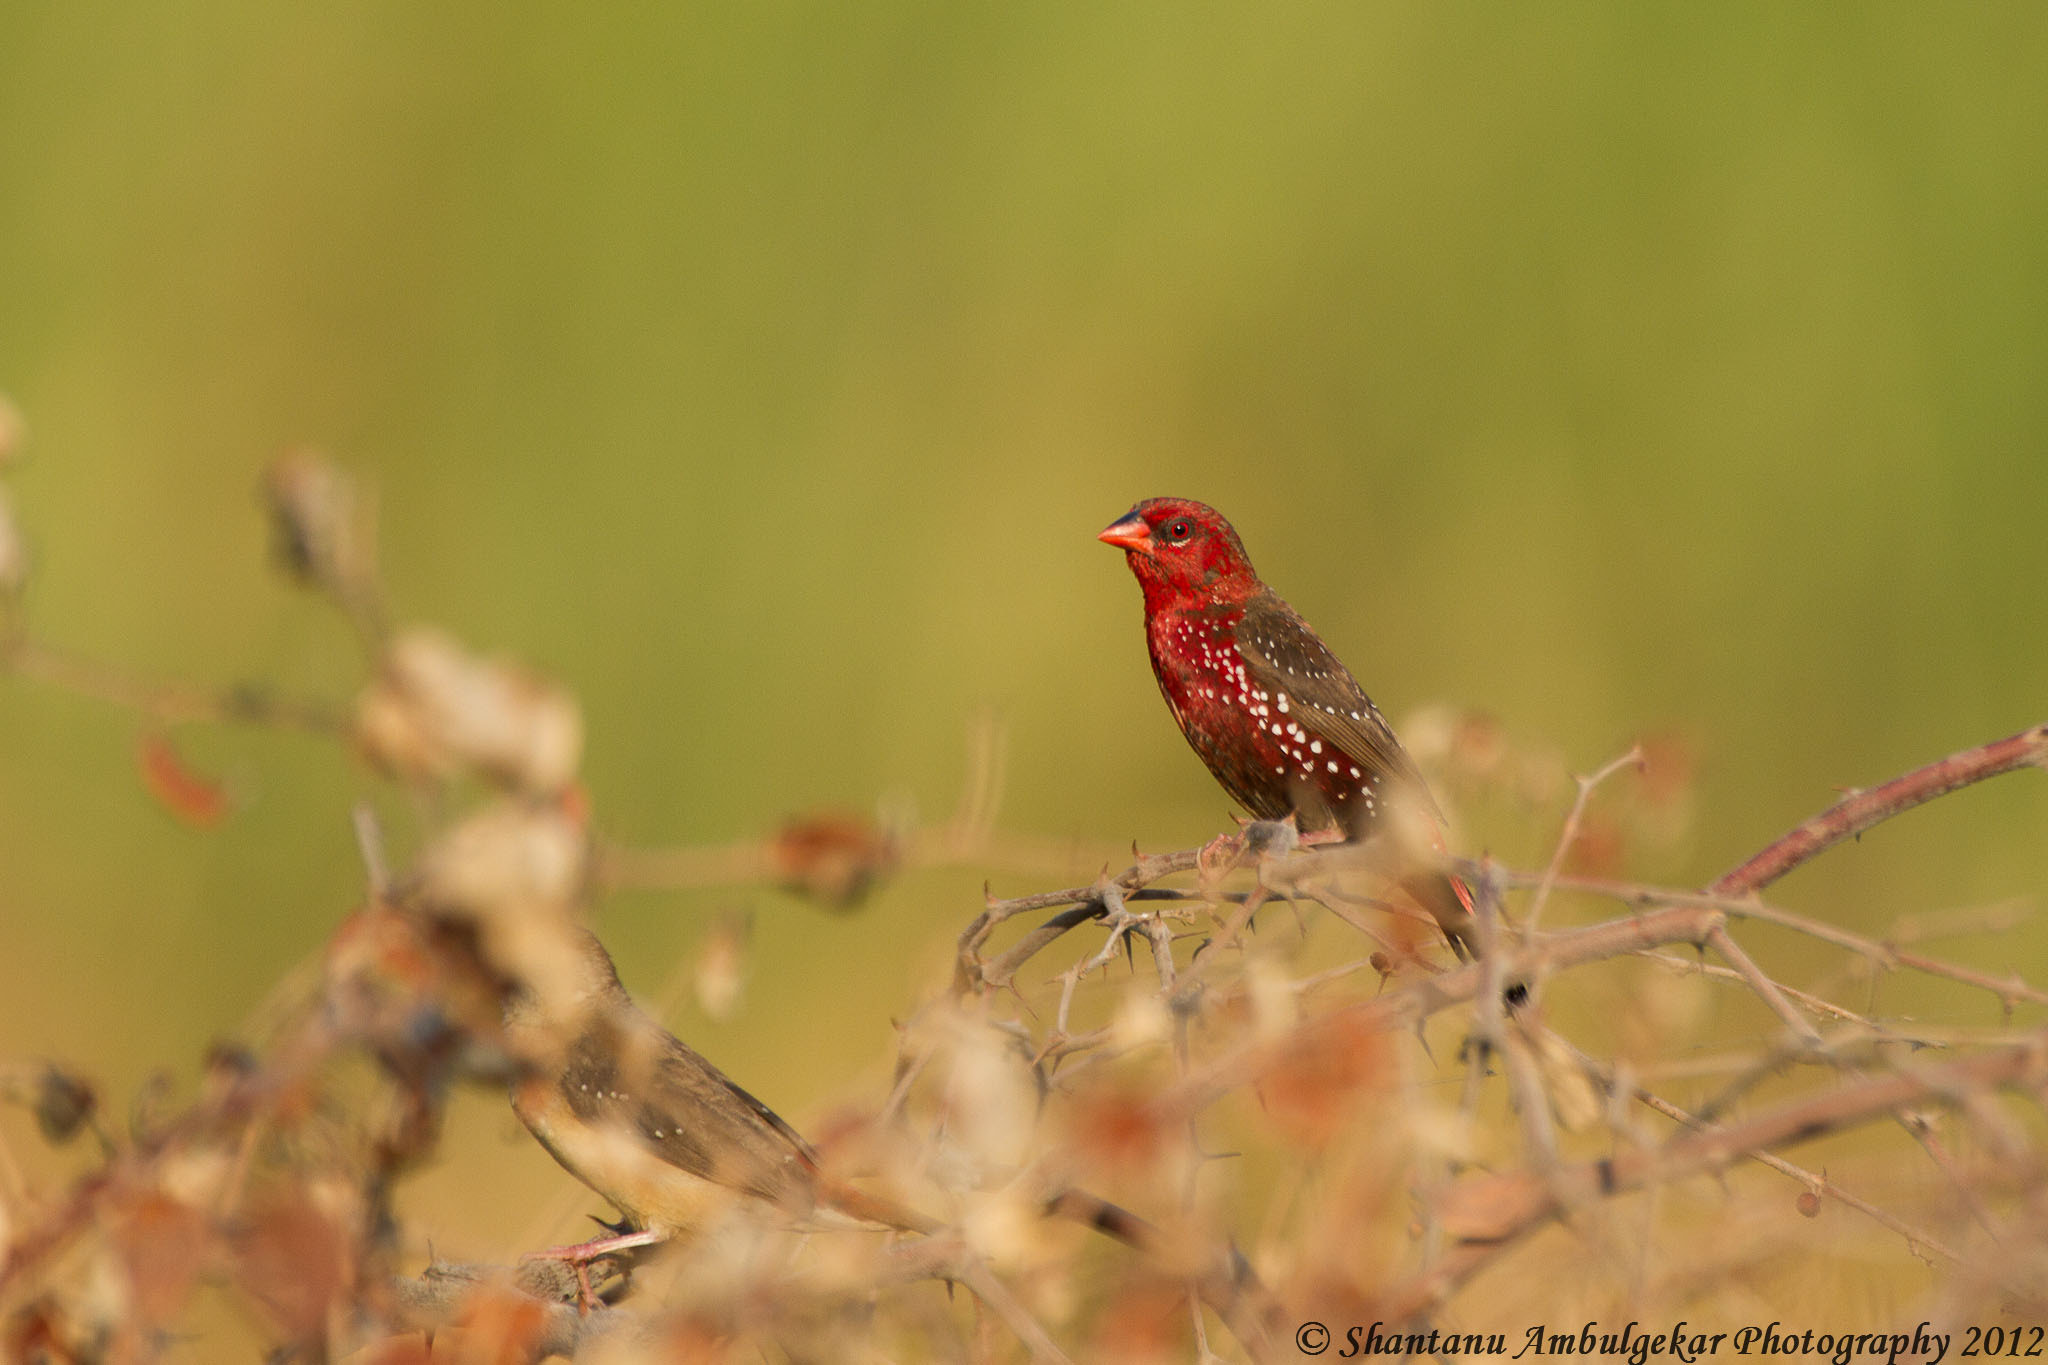 Photograph Red Munia or Red Avadhavat by Shantanu Ambulgekar on 500px